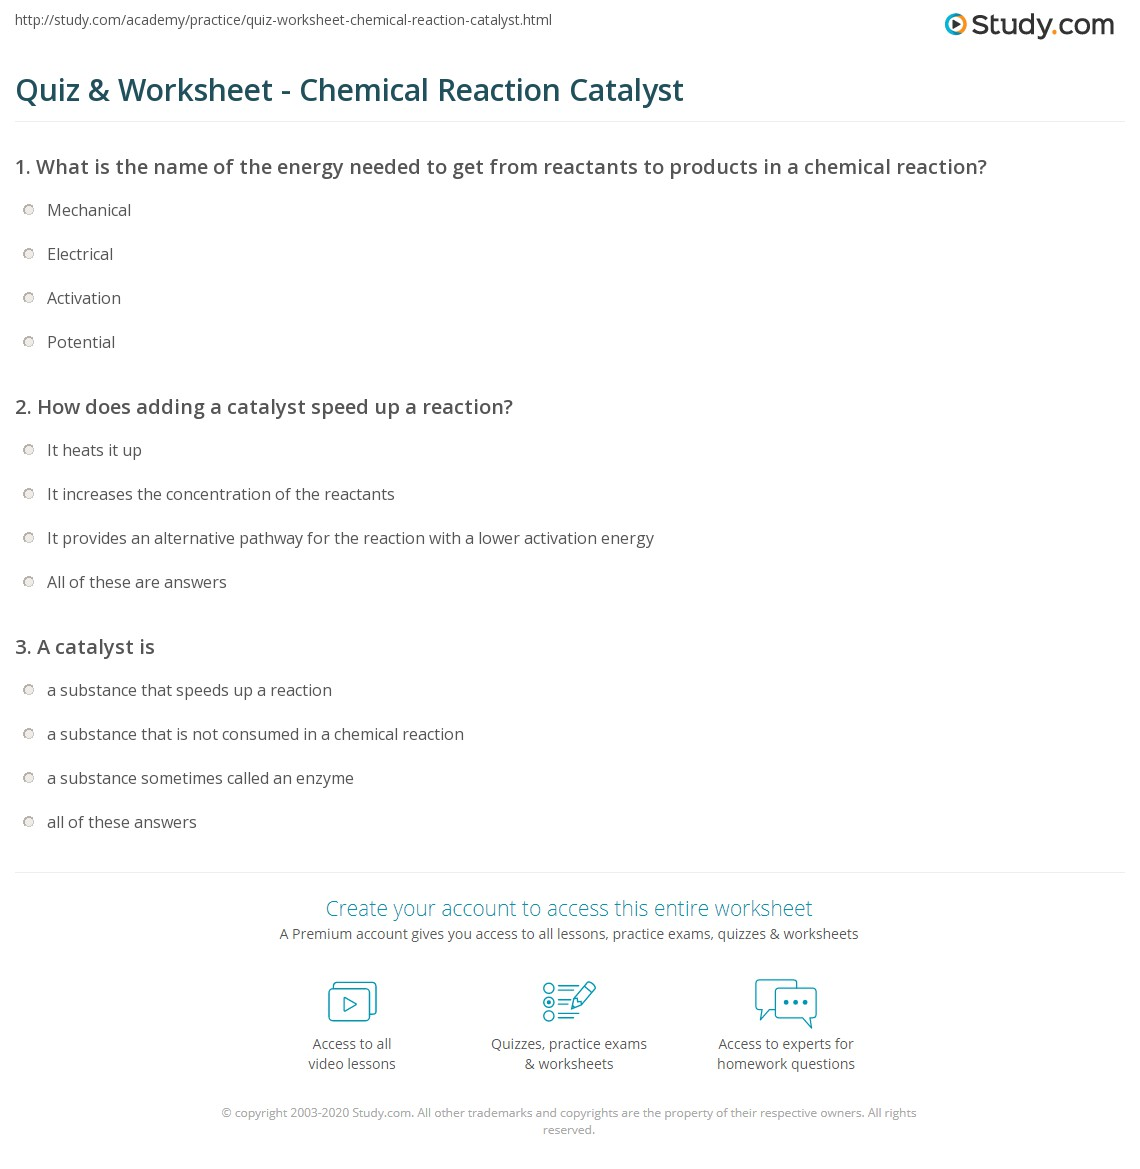 Worksheets Classifying Chemical Reactions Worksheet Answers overview chemical reactions worksheet photos toribeedesign worksheets for school quiz reaction catalyst study com